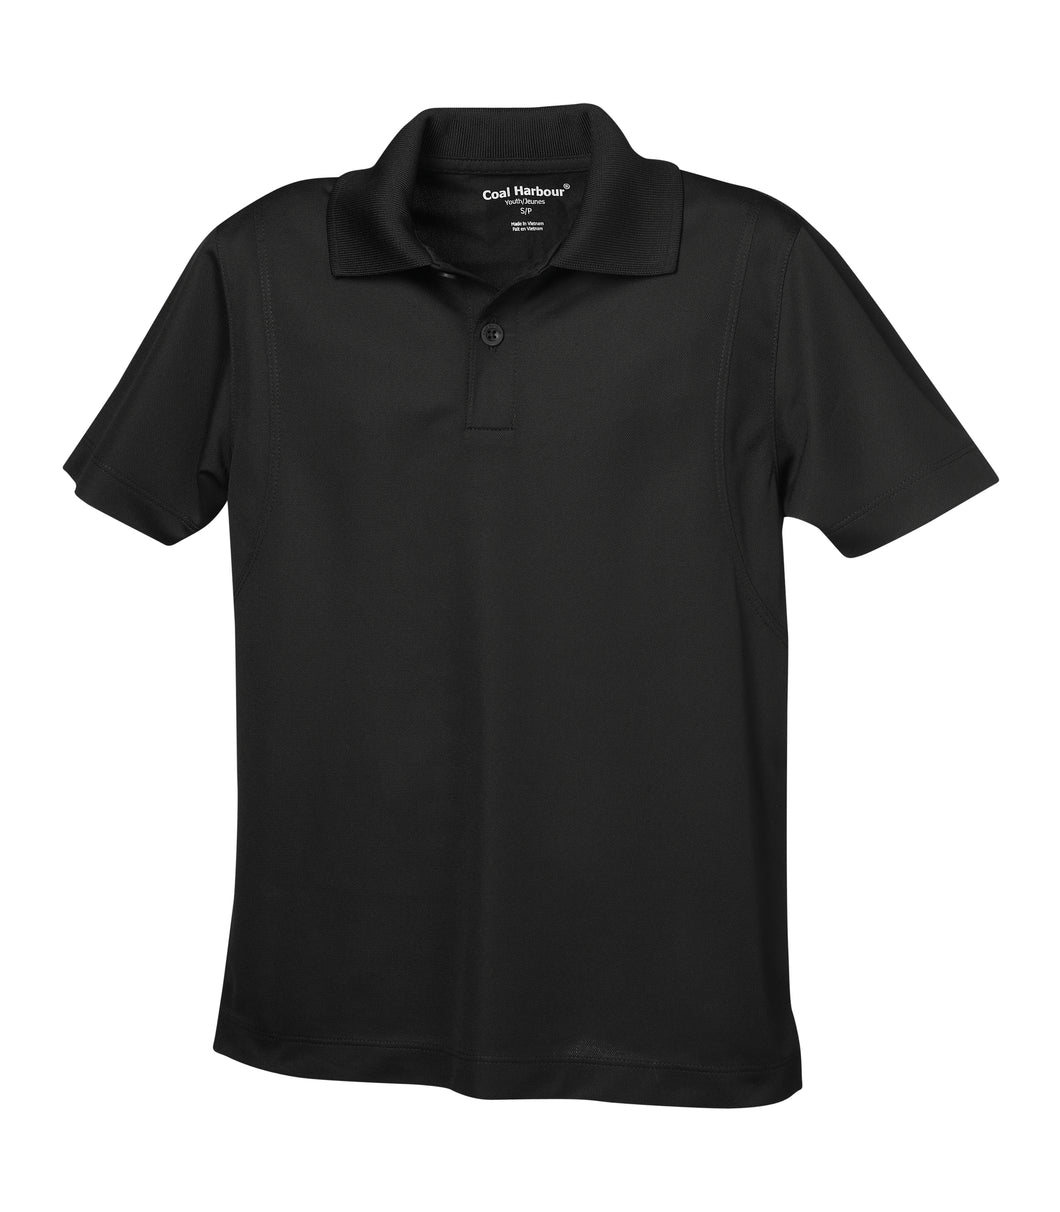 COAL HARBOUR® SNAG RESISTANT YOUTH SPORT SHIRT. Y445